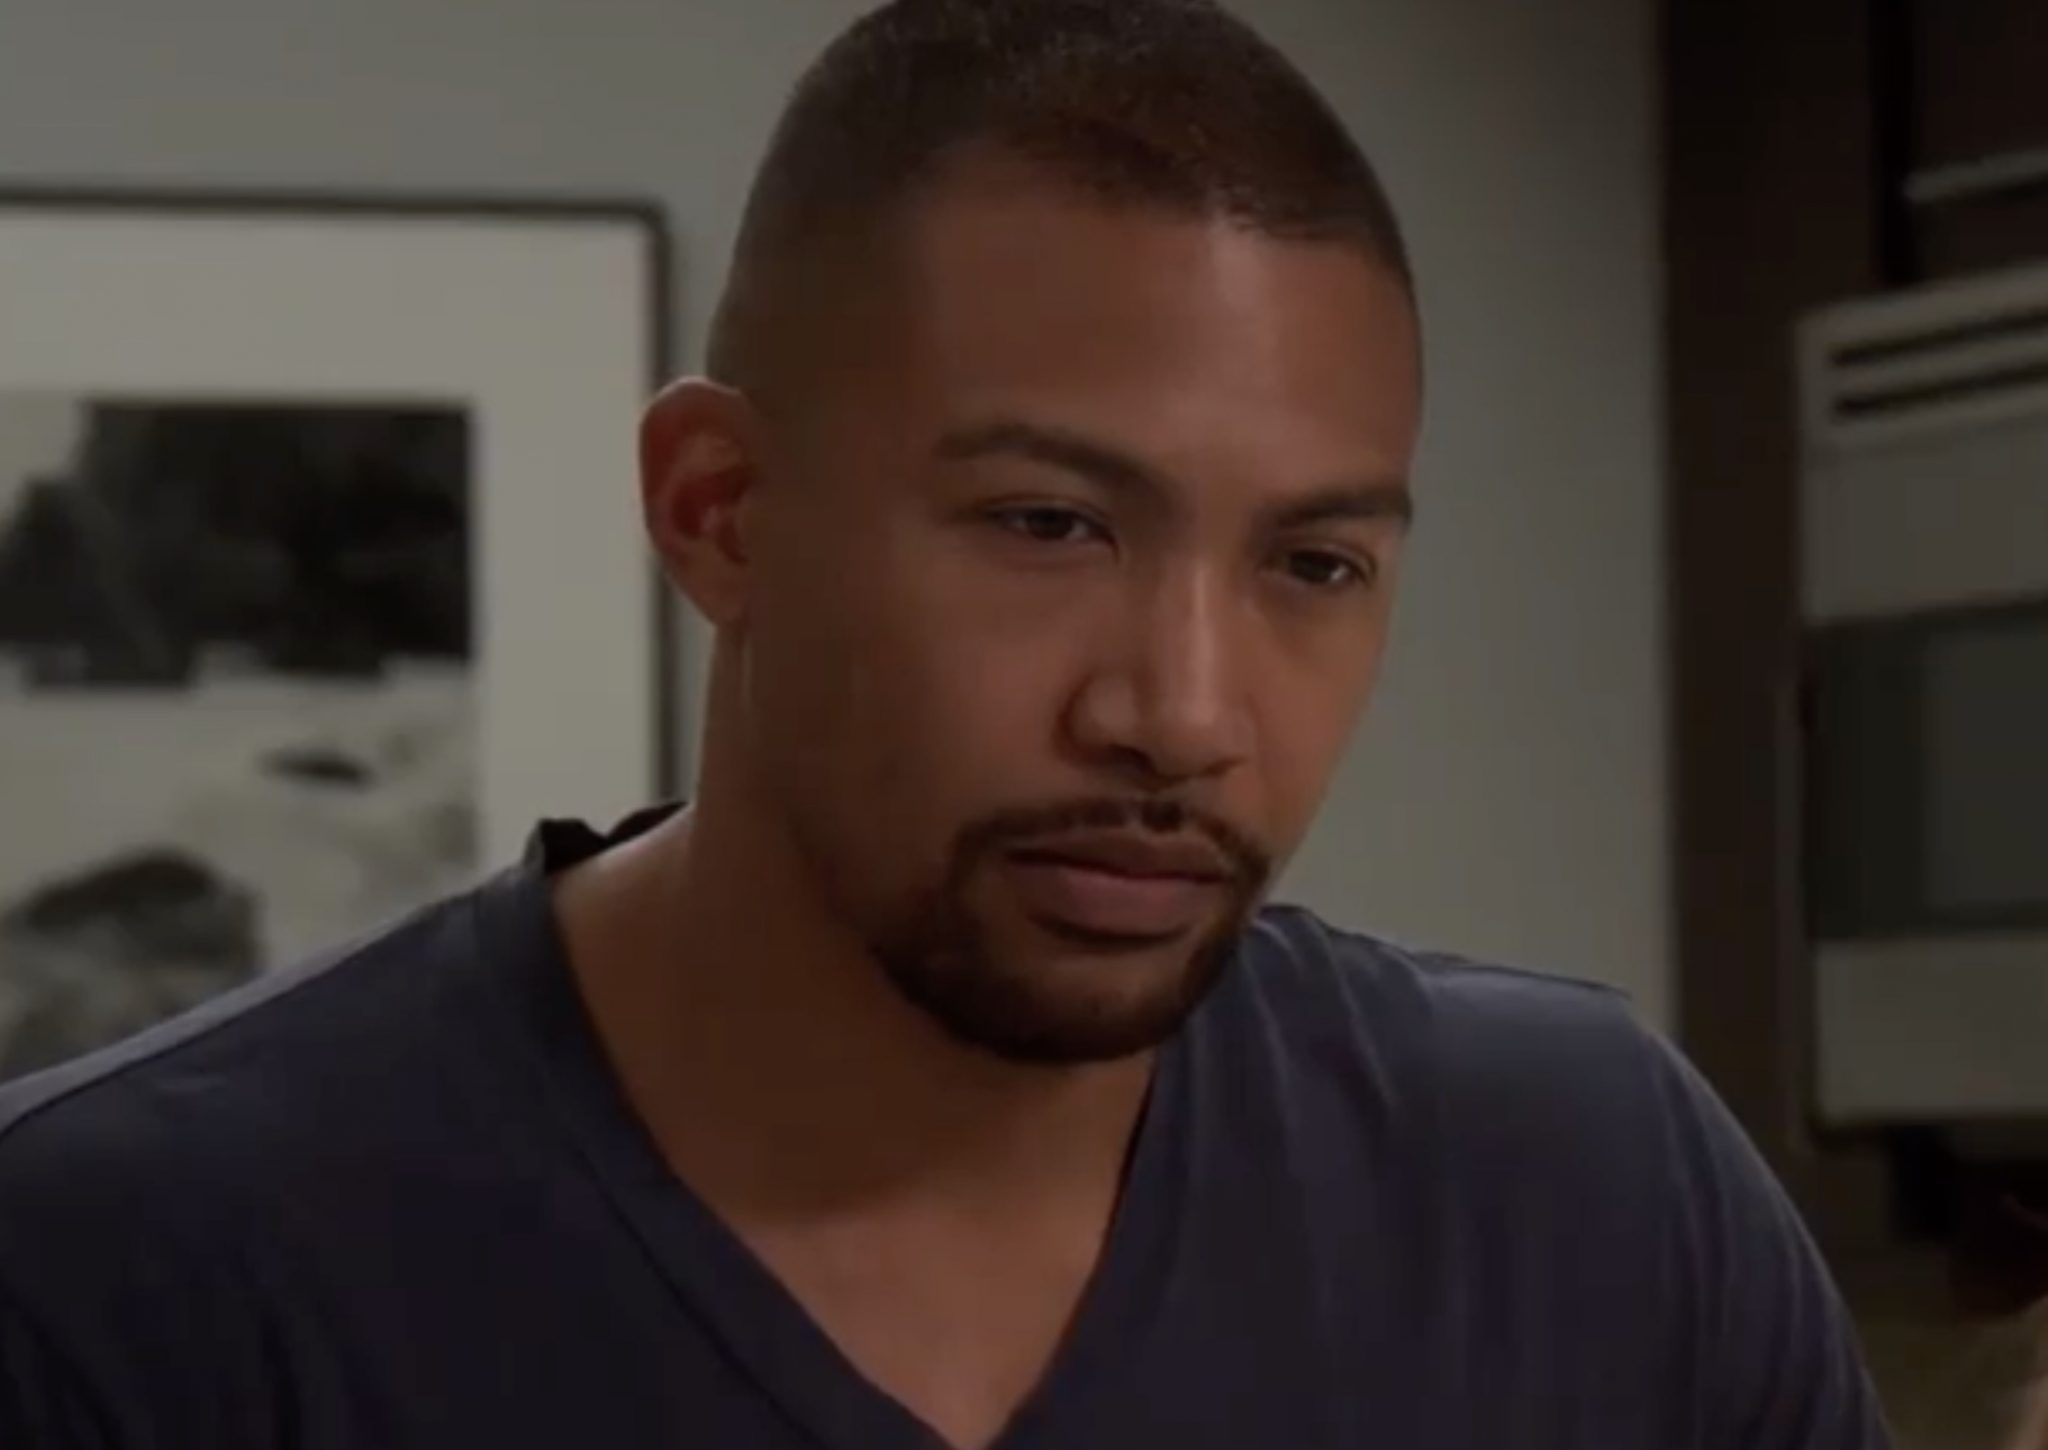 Charles Michael Davis, Younger, NCIS New Orleans-https://www.instagram.com/p/B1ROxJWnDlY/